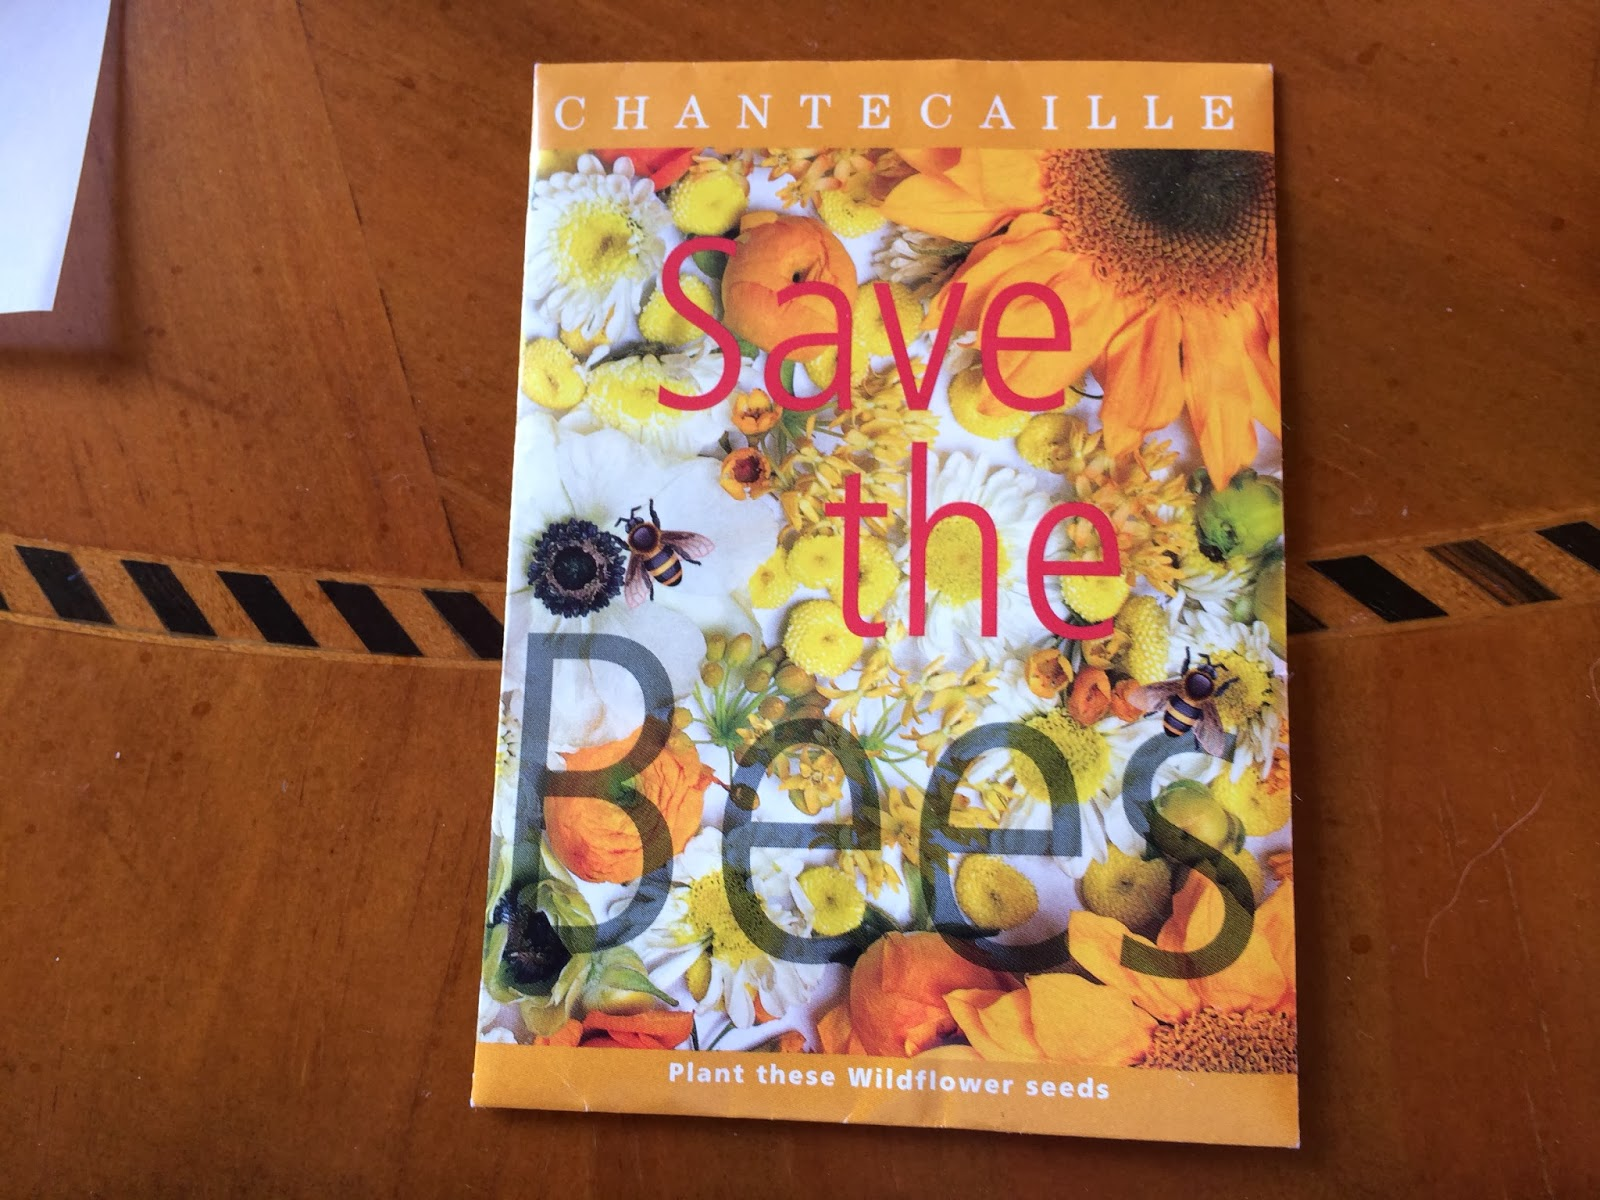 Chantecaille Save the Bees Review